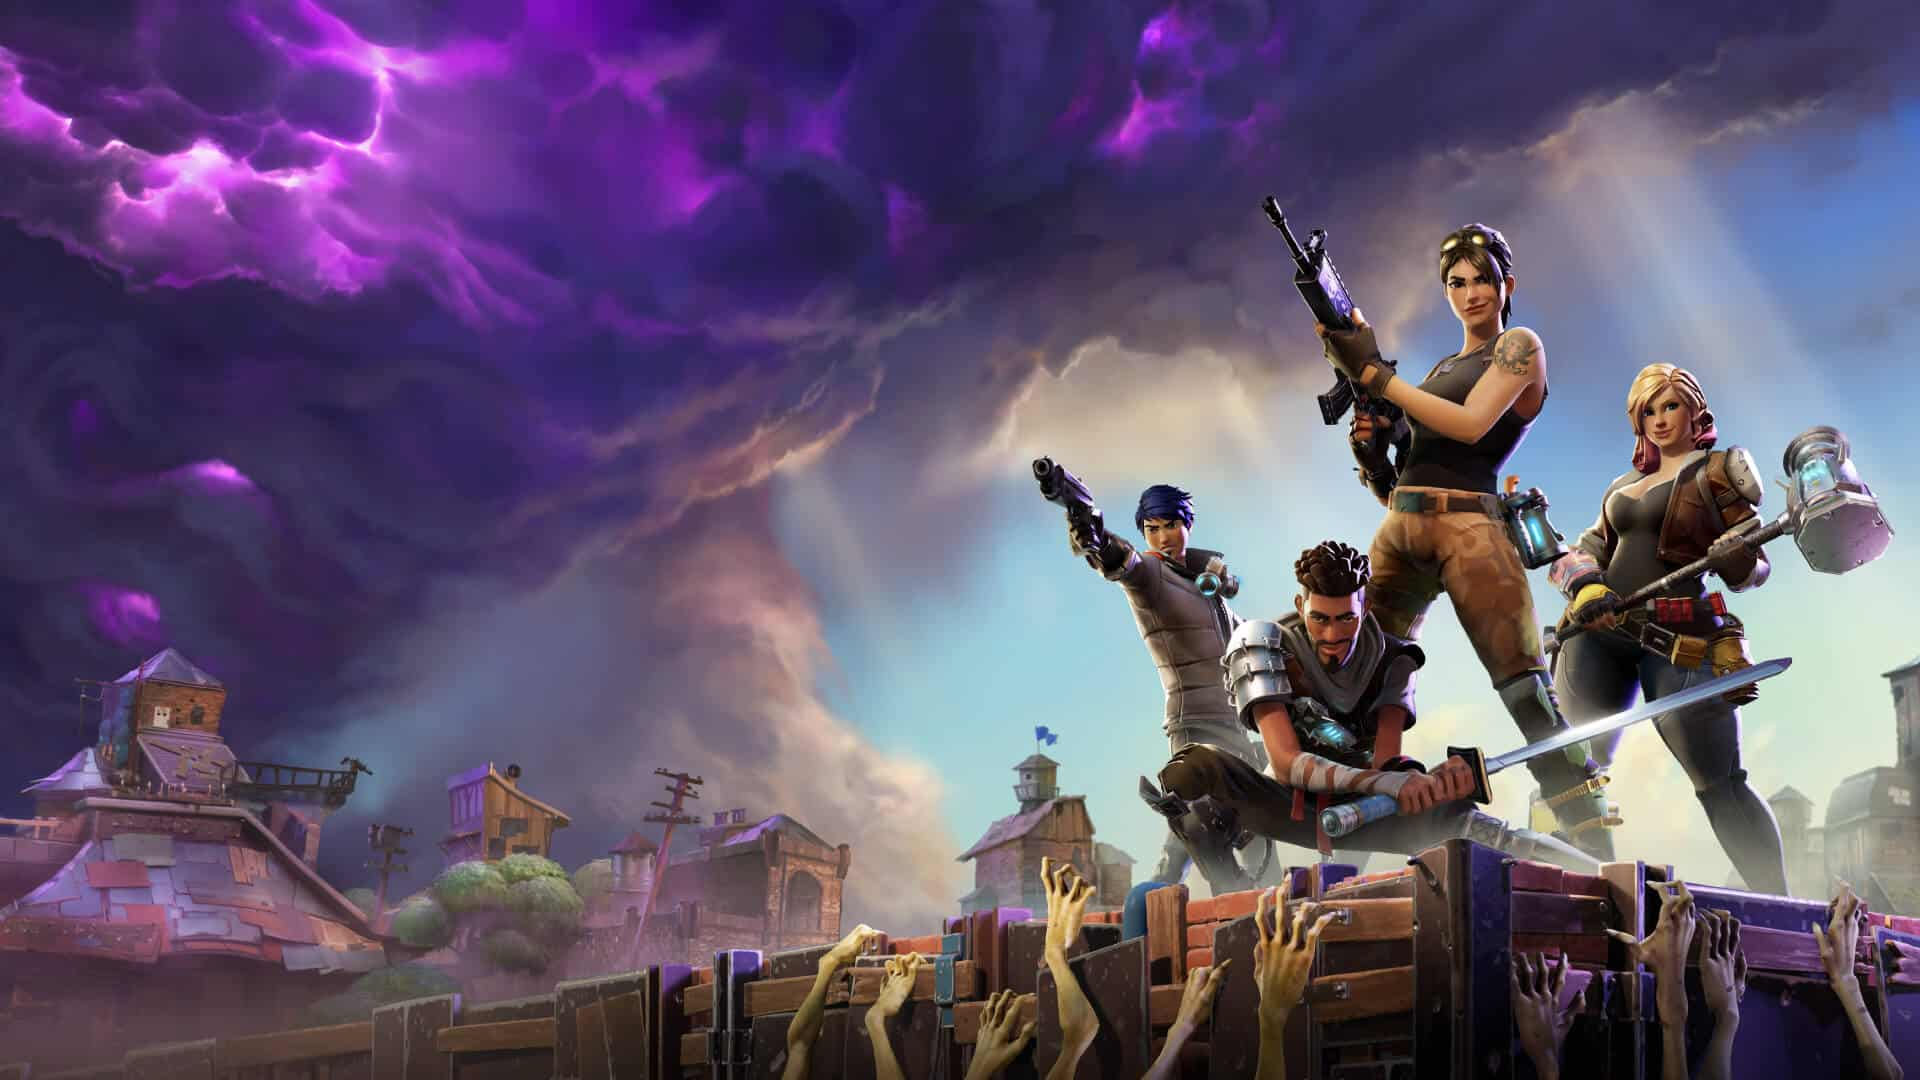 Good Quality Fortnite Wallpapers